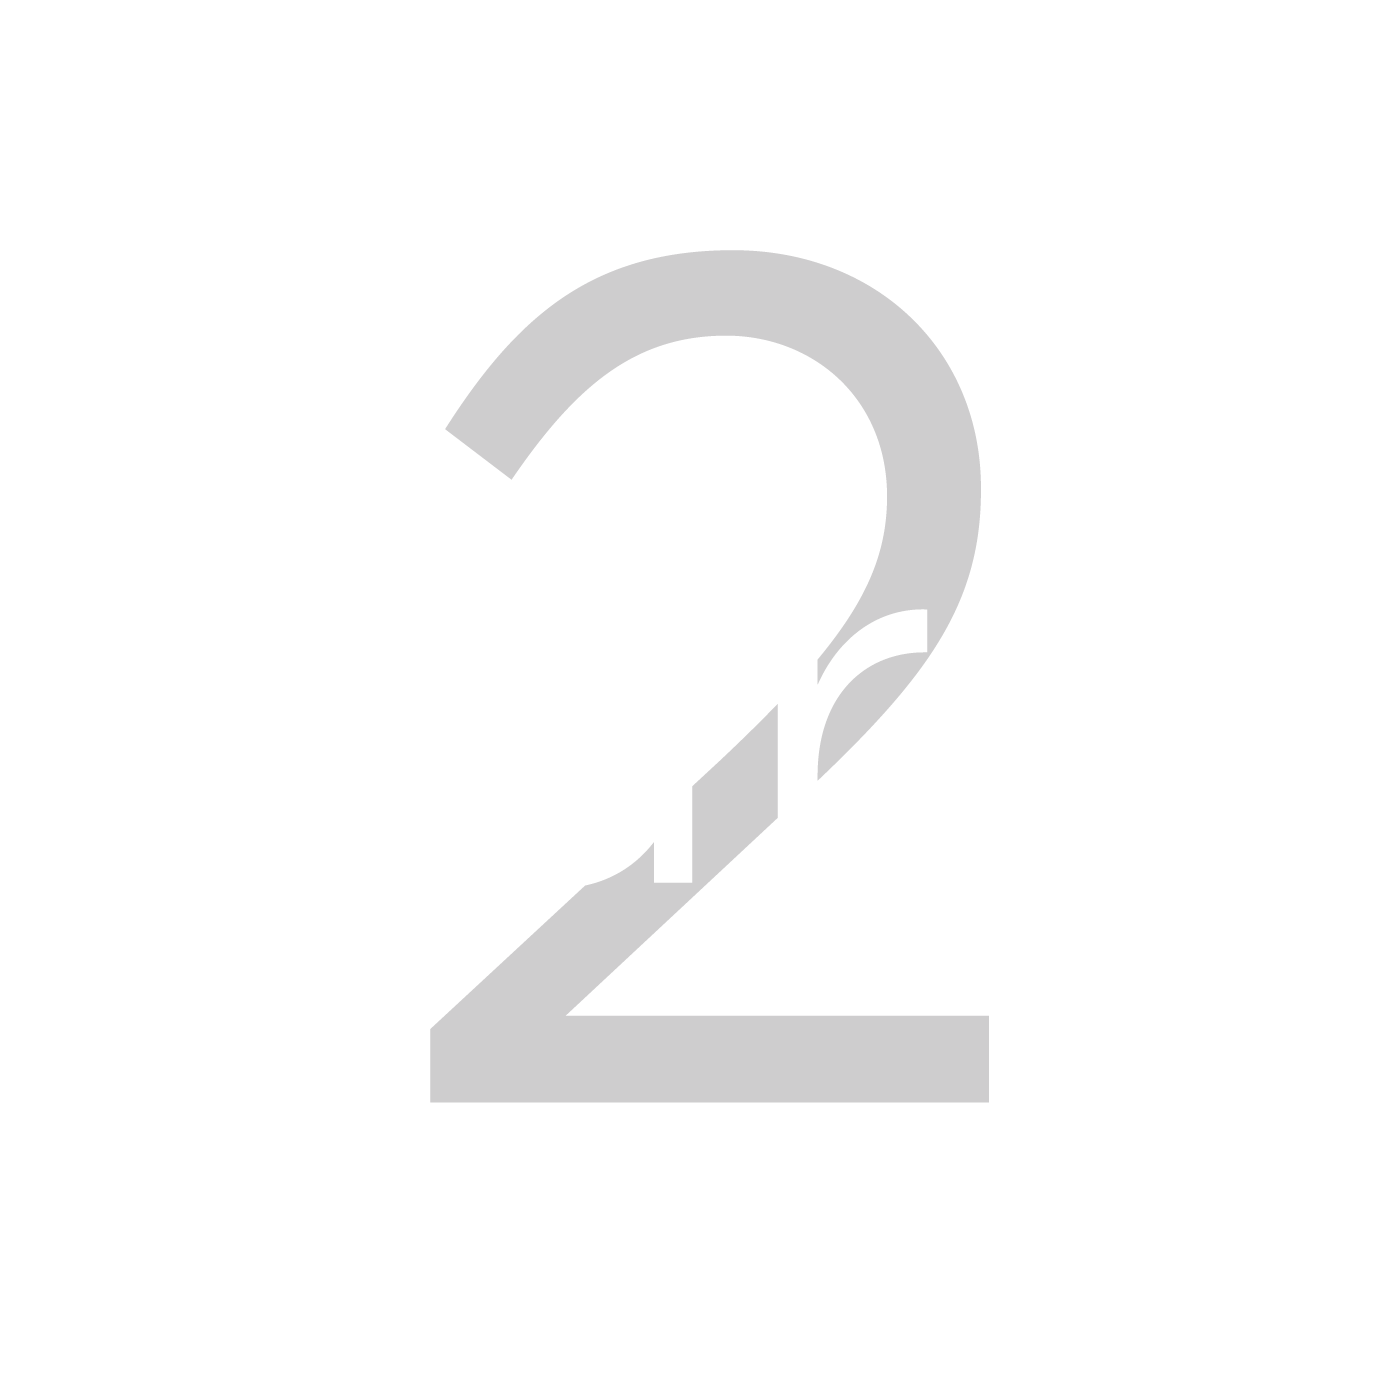 [Translate to Englisch:] Carb 2